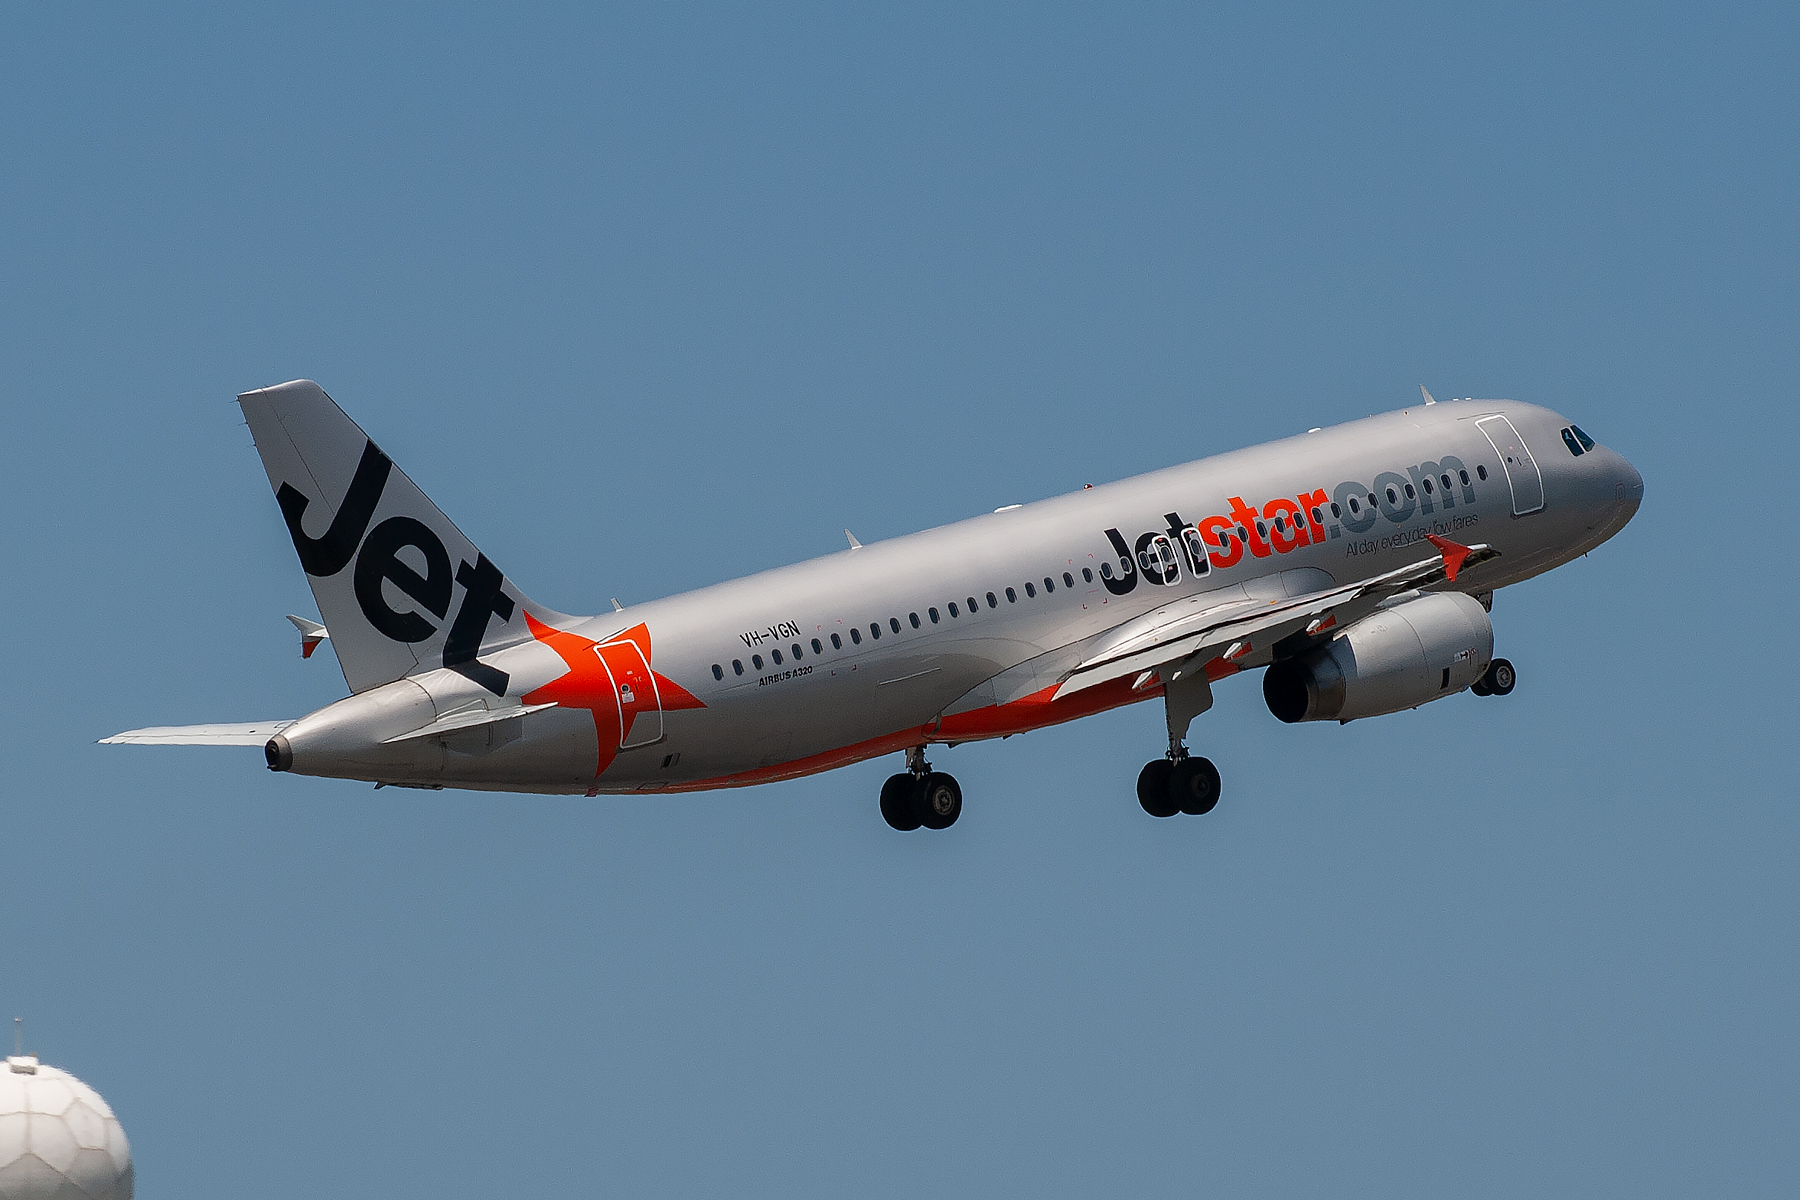 Jetstar Airways Airbus A320-200 VH-VGN at Kingsford Smith